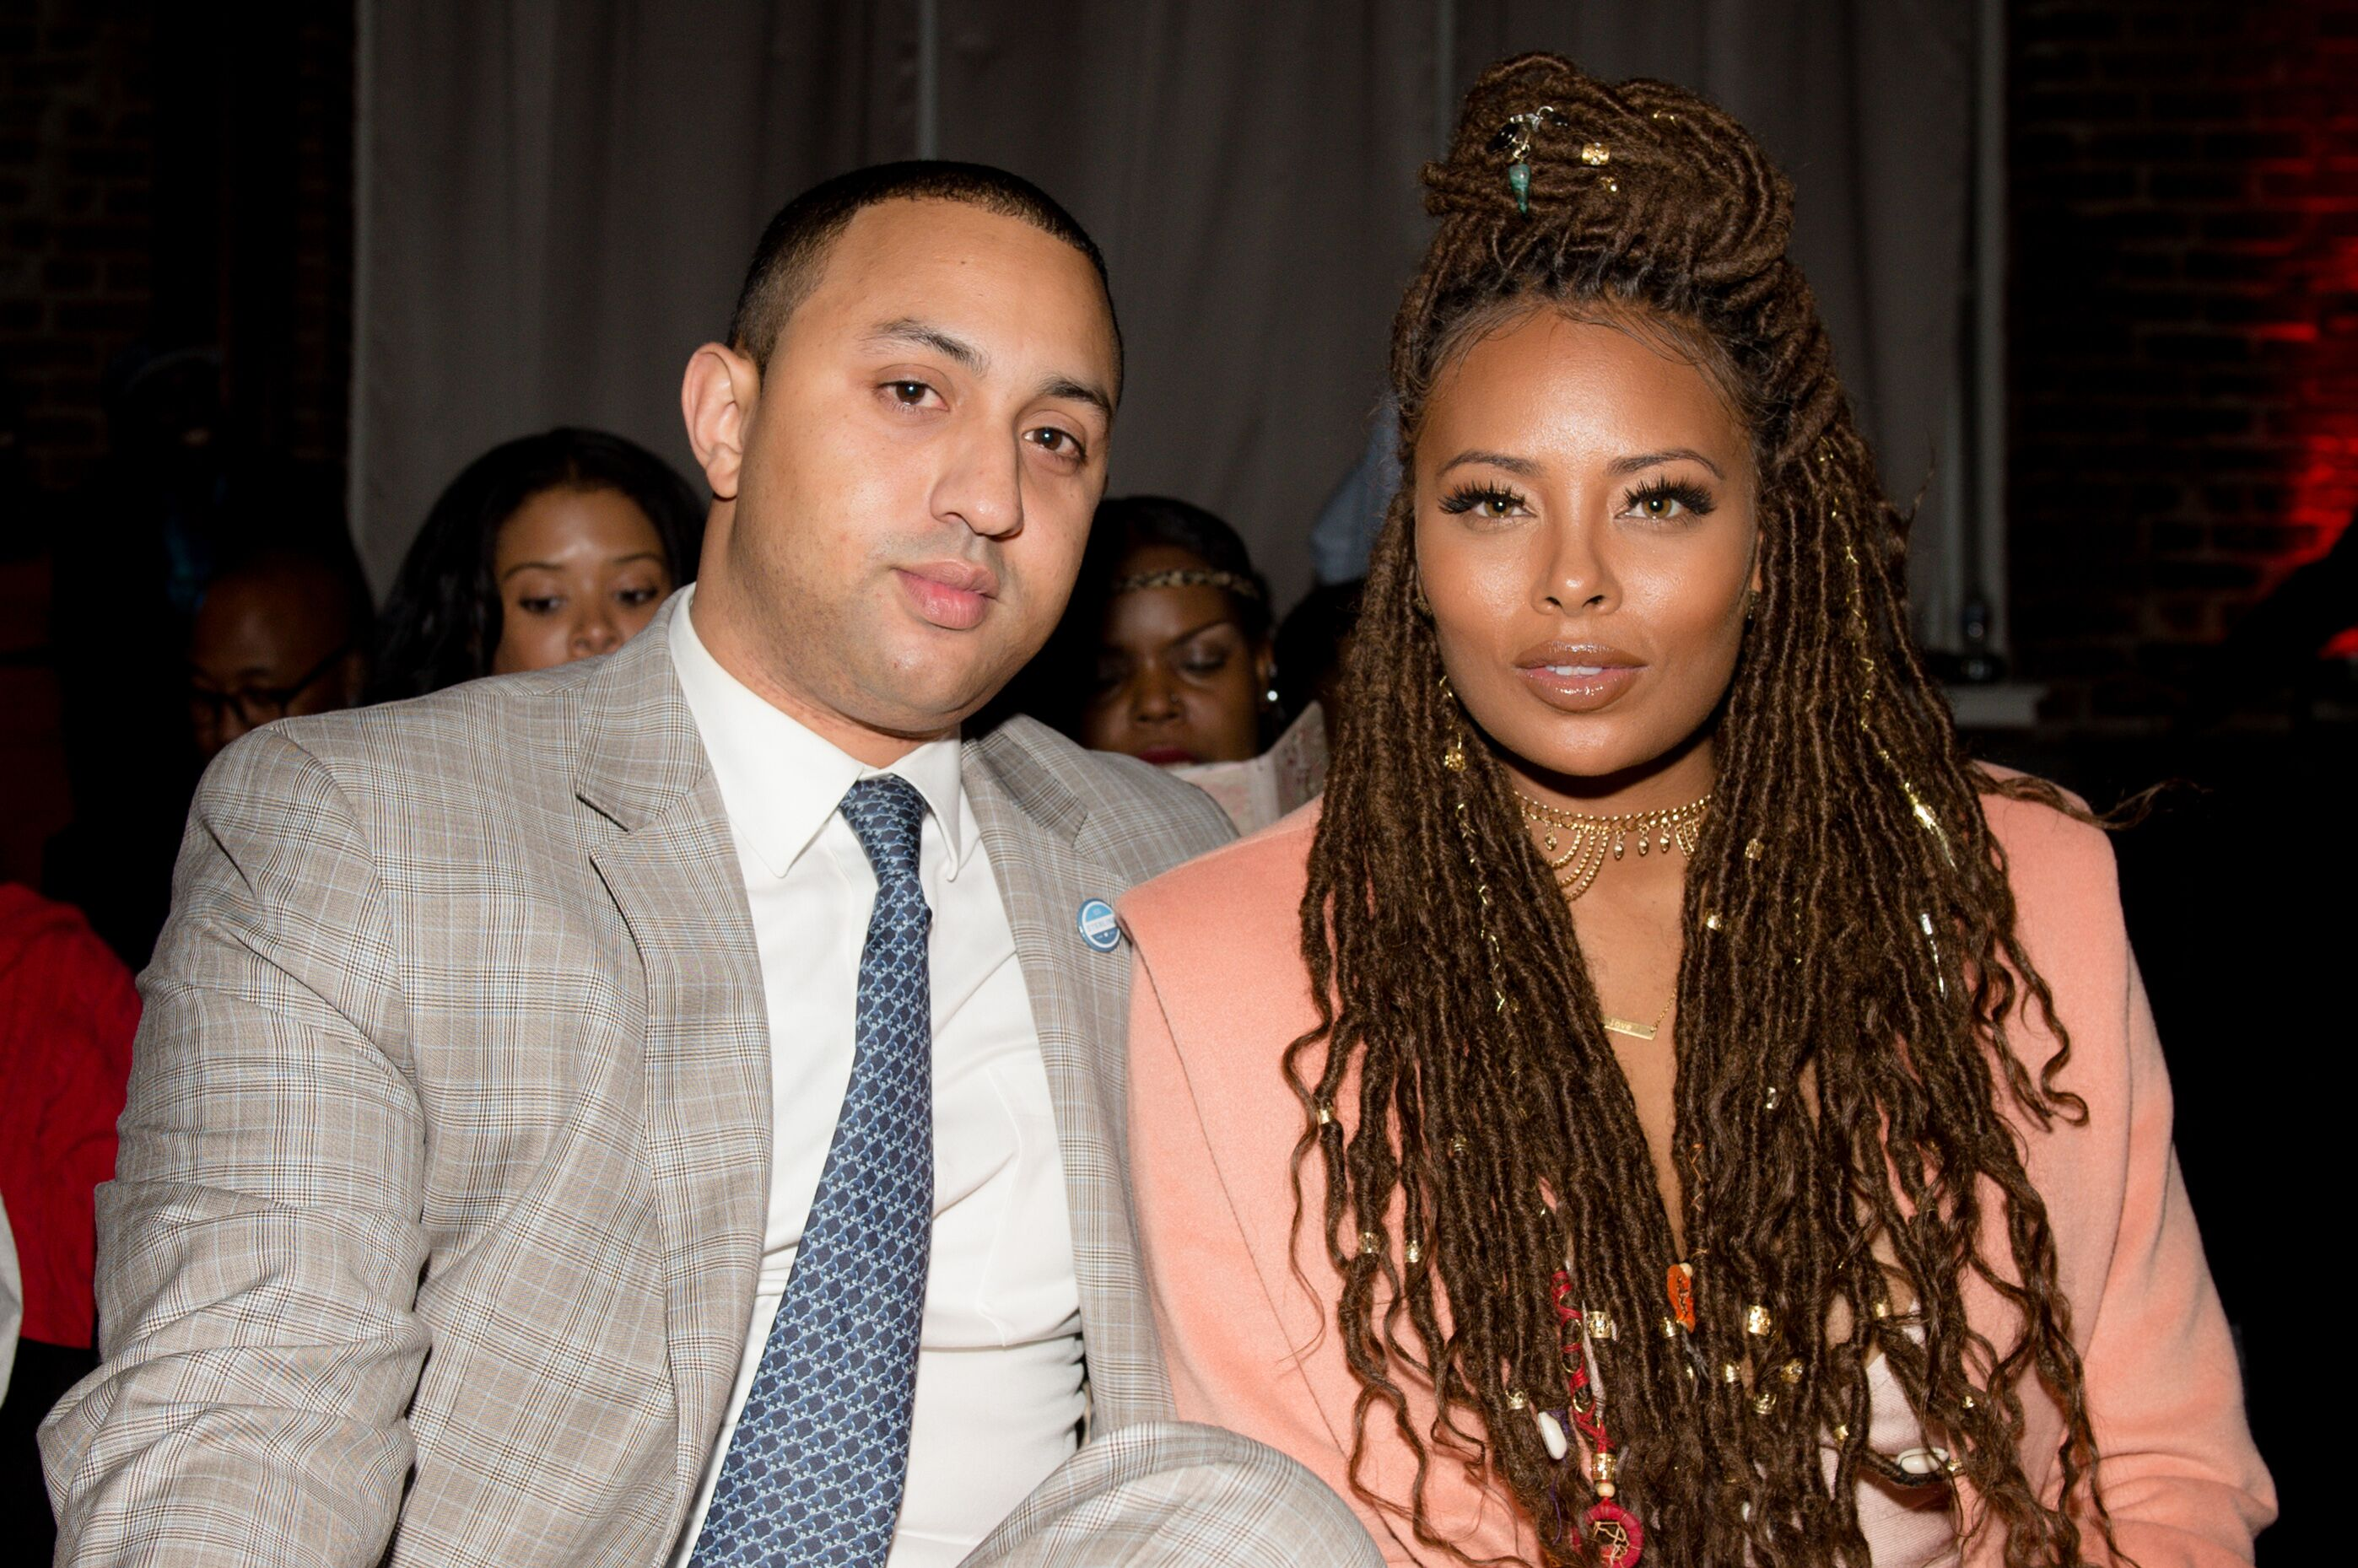 """""""Real Housewives of Atlanta"""" star Eva Marcille with husband Michael Sterling at a formal event 